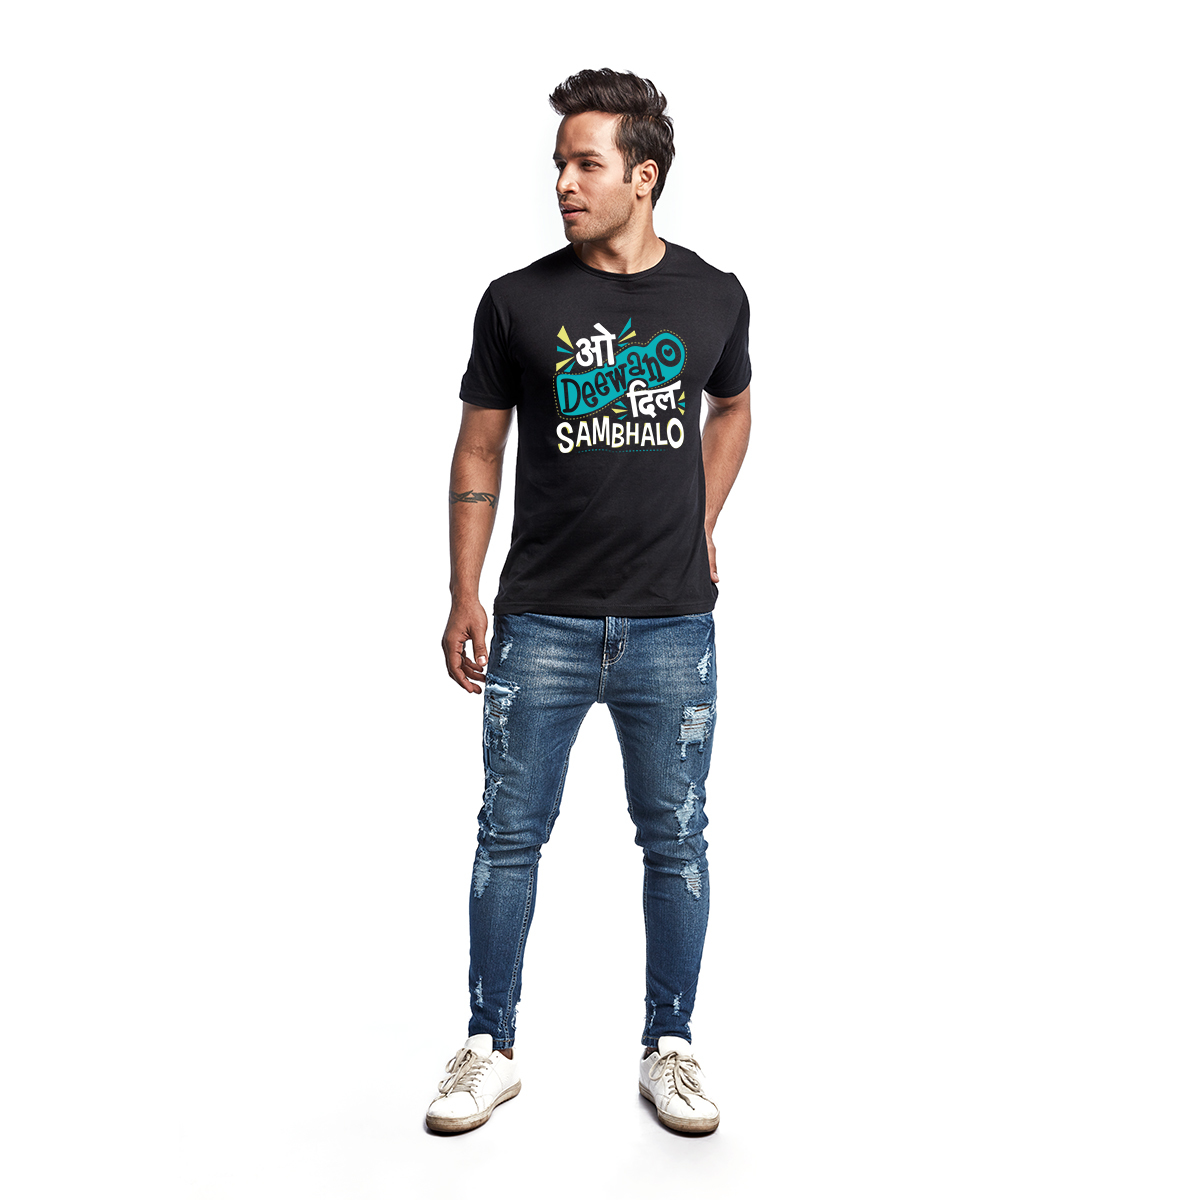 O Deewano Dil Sambhalo Men's Fashionable T-Shirt